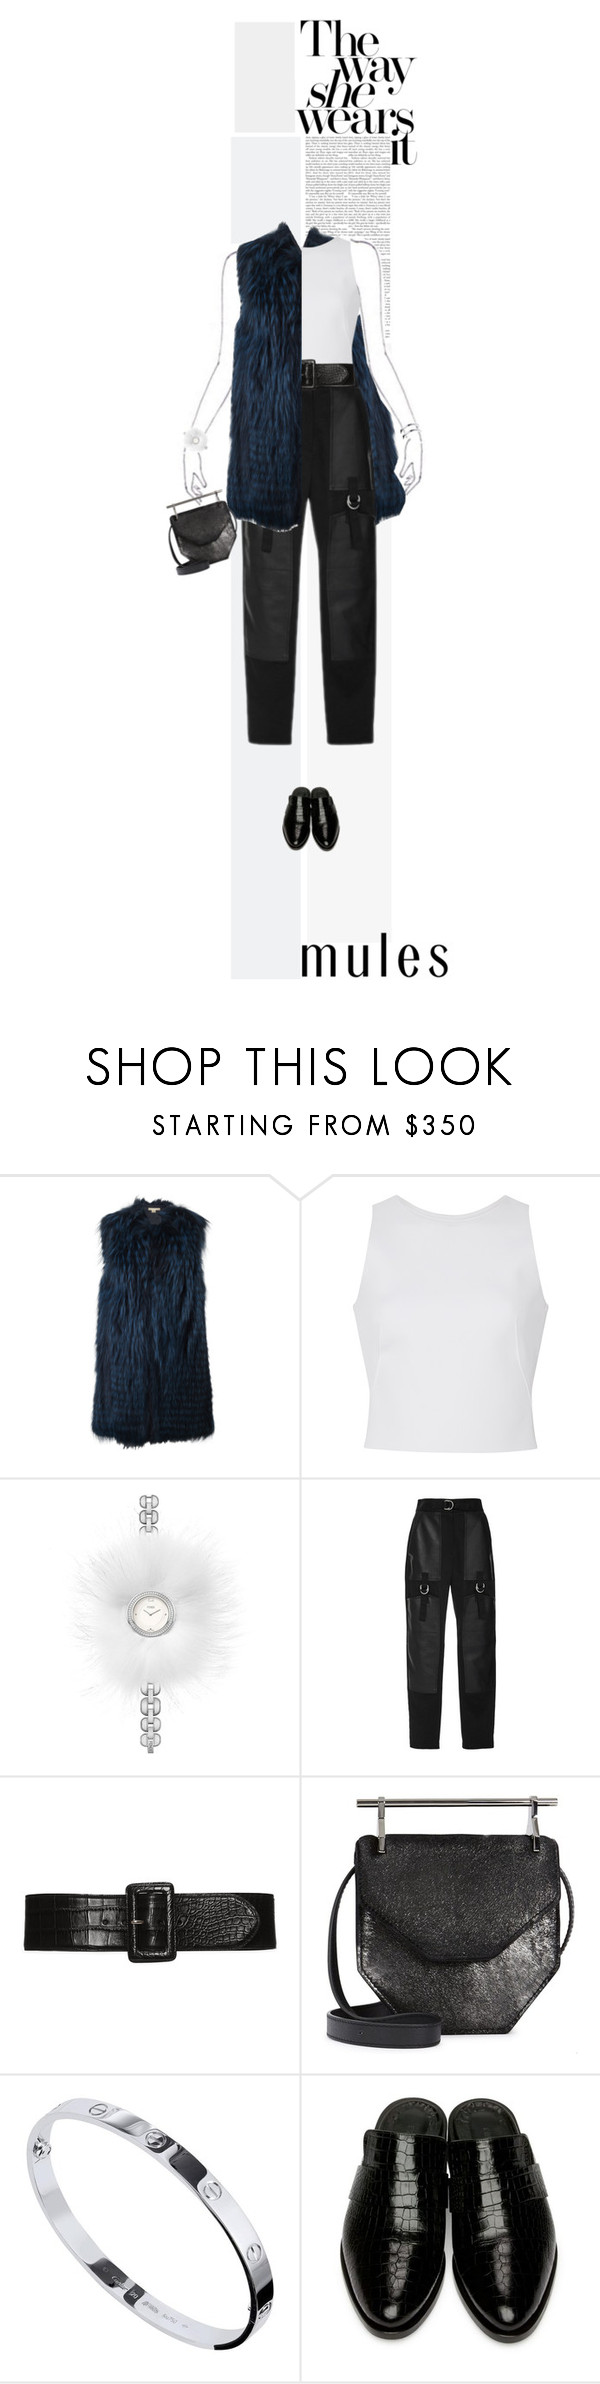 """""""Slip 'Em On"""" by poison-iivy ❤ liked on Polyvore featuring Michael Kors, Carolina Herrera, Fendi, Alexander Wang, M2Malletier, Cartier, Keen Footwear and mules"""